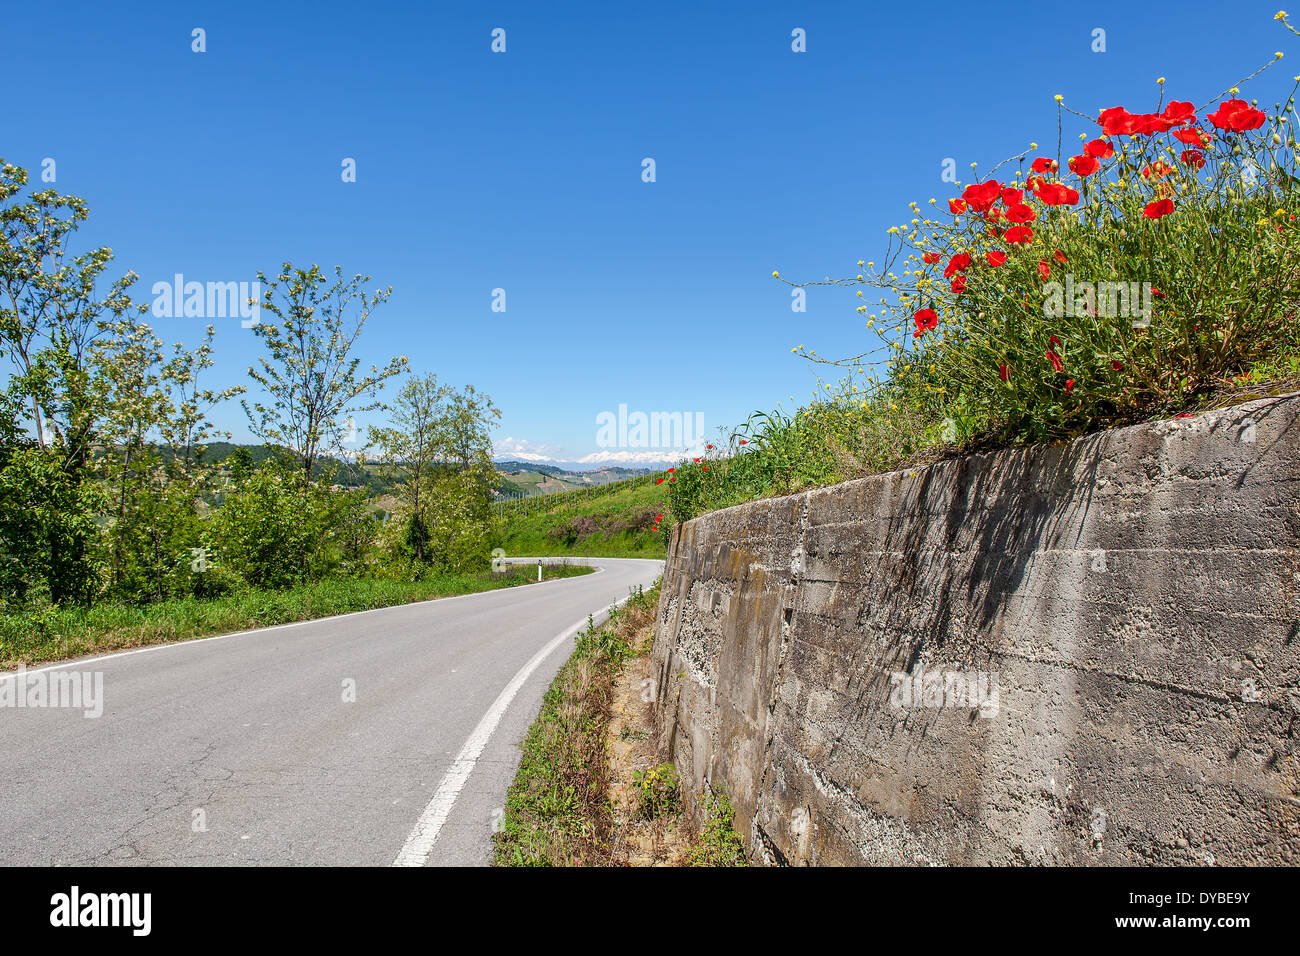 Asphalt road among green hills and red poppies under blue sky in Piedmont, Northern Italy. Stock Photo